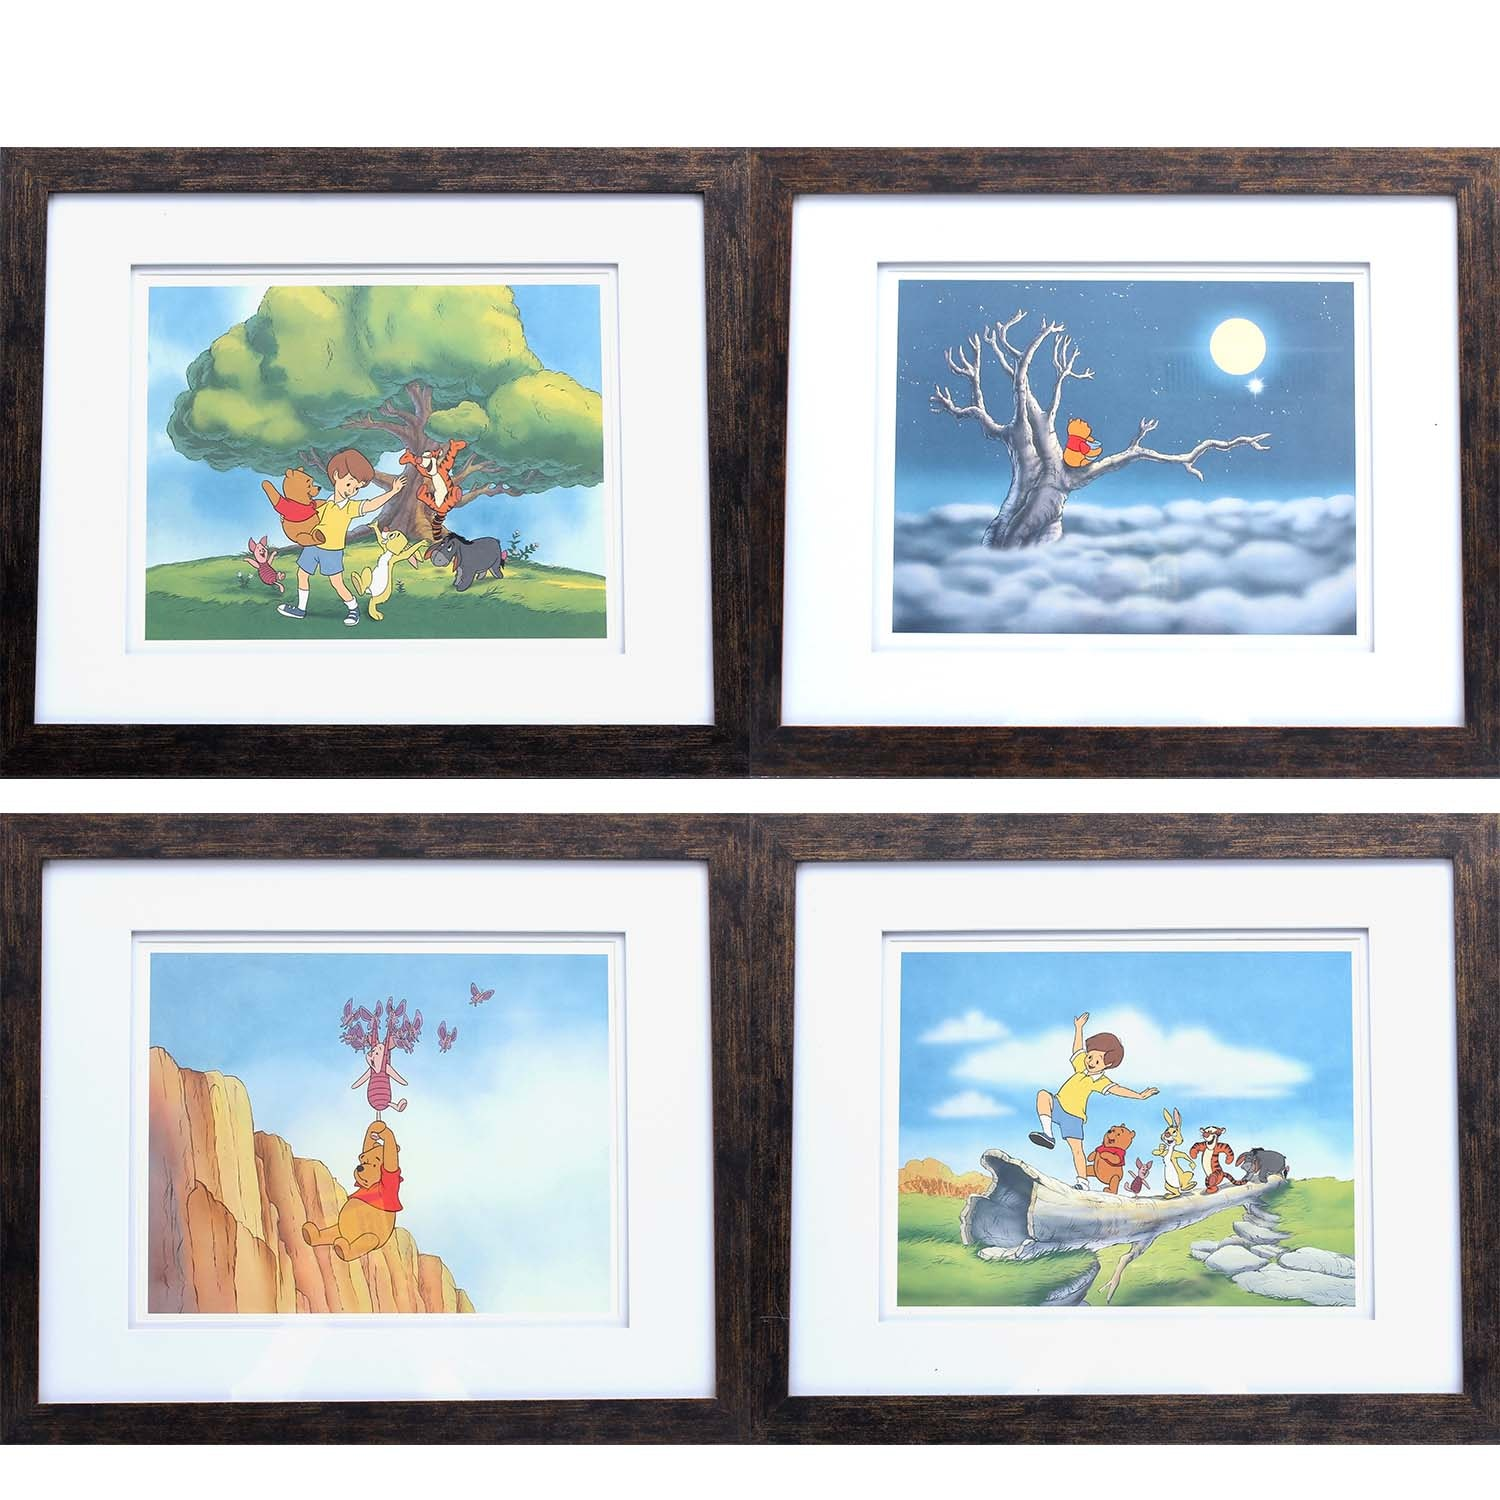 Vintage Disney's Exclusive Pooh's Grand Adventure Offset Lithographs